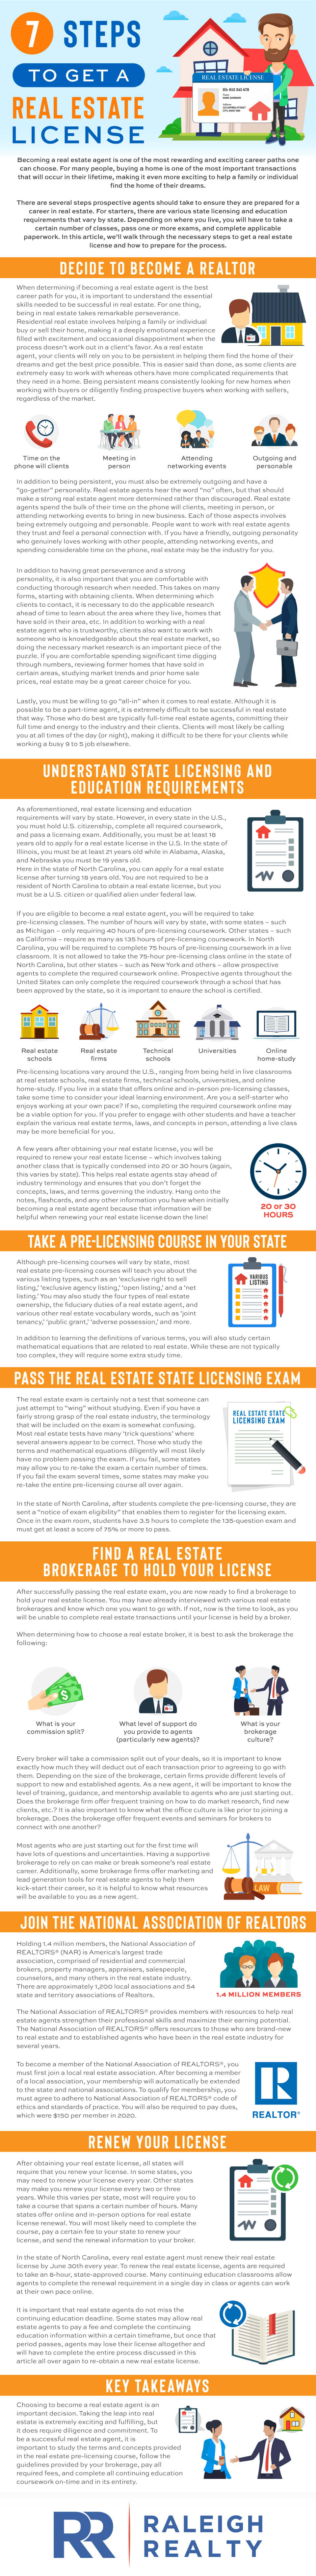 How to Get a Real Estate License - 7 Steps to Get a Real Estate License